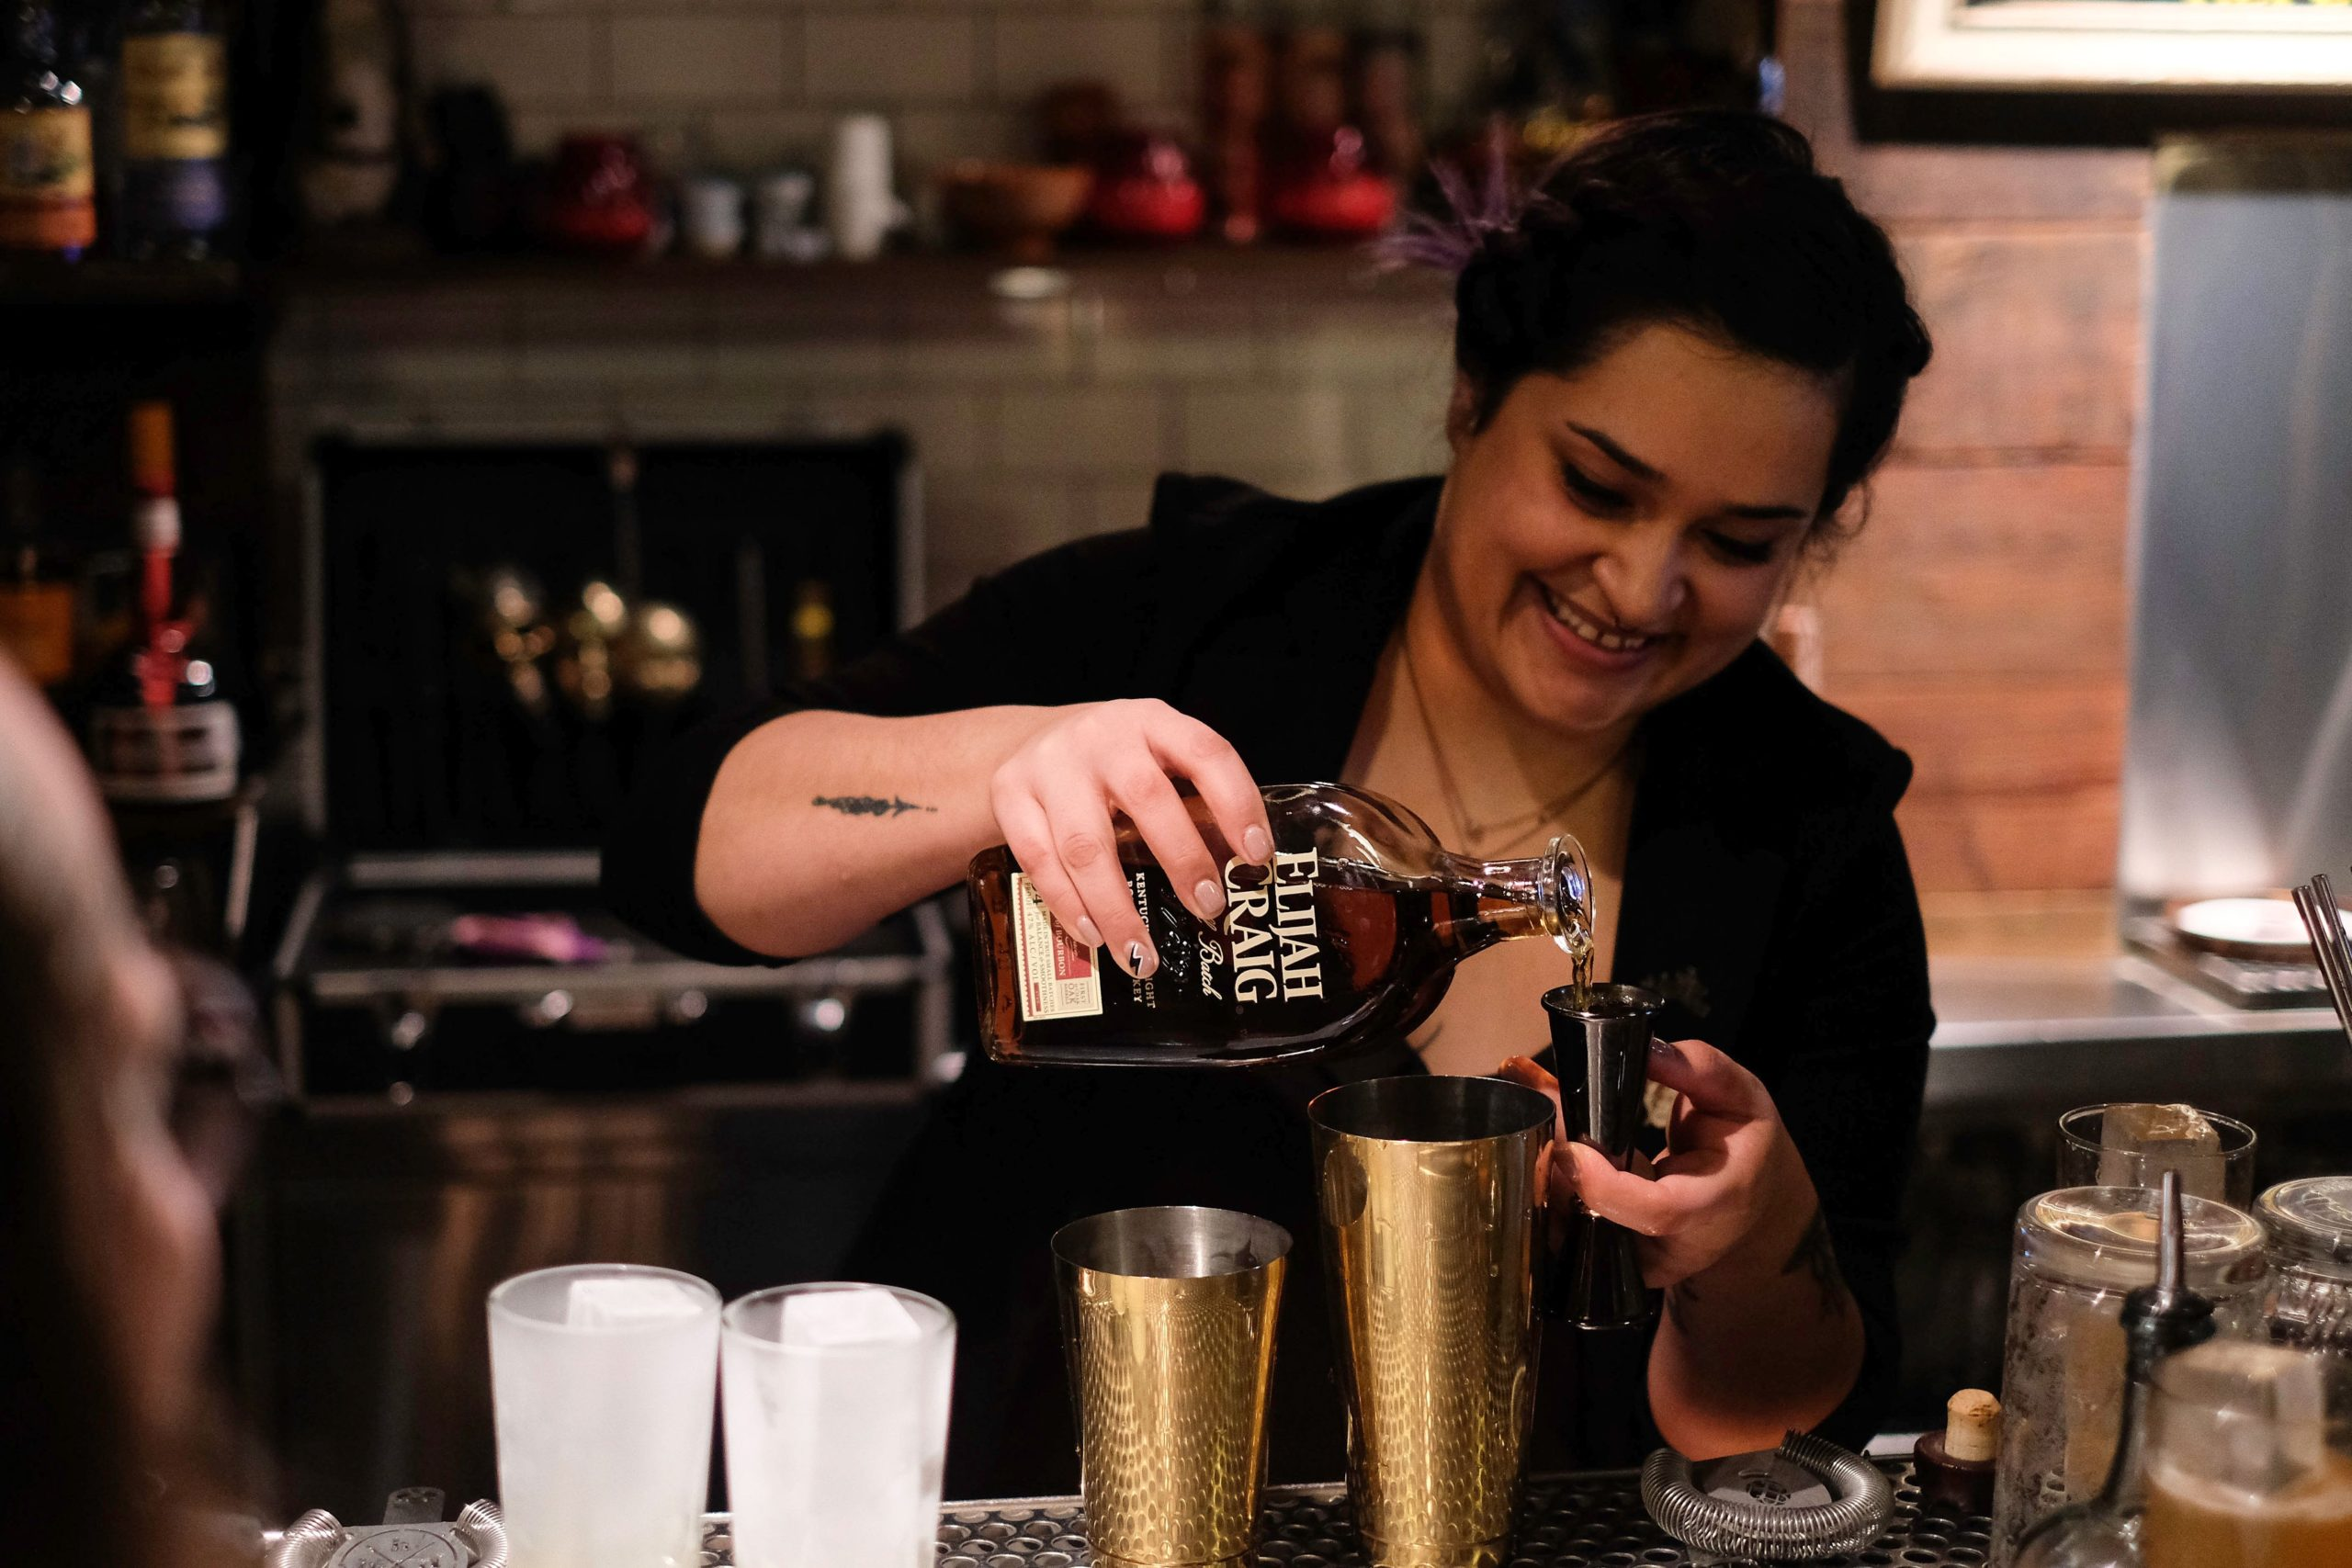 Bartender of the Year Austin Finalist Looks to Mother's Inspiration for Winning Cocktail